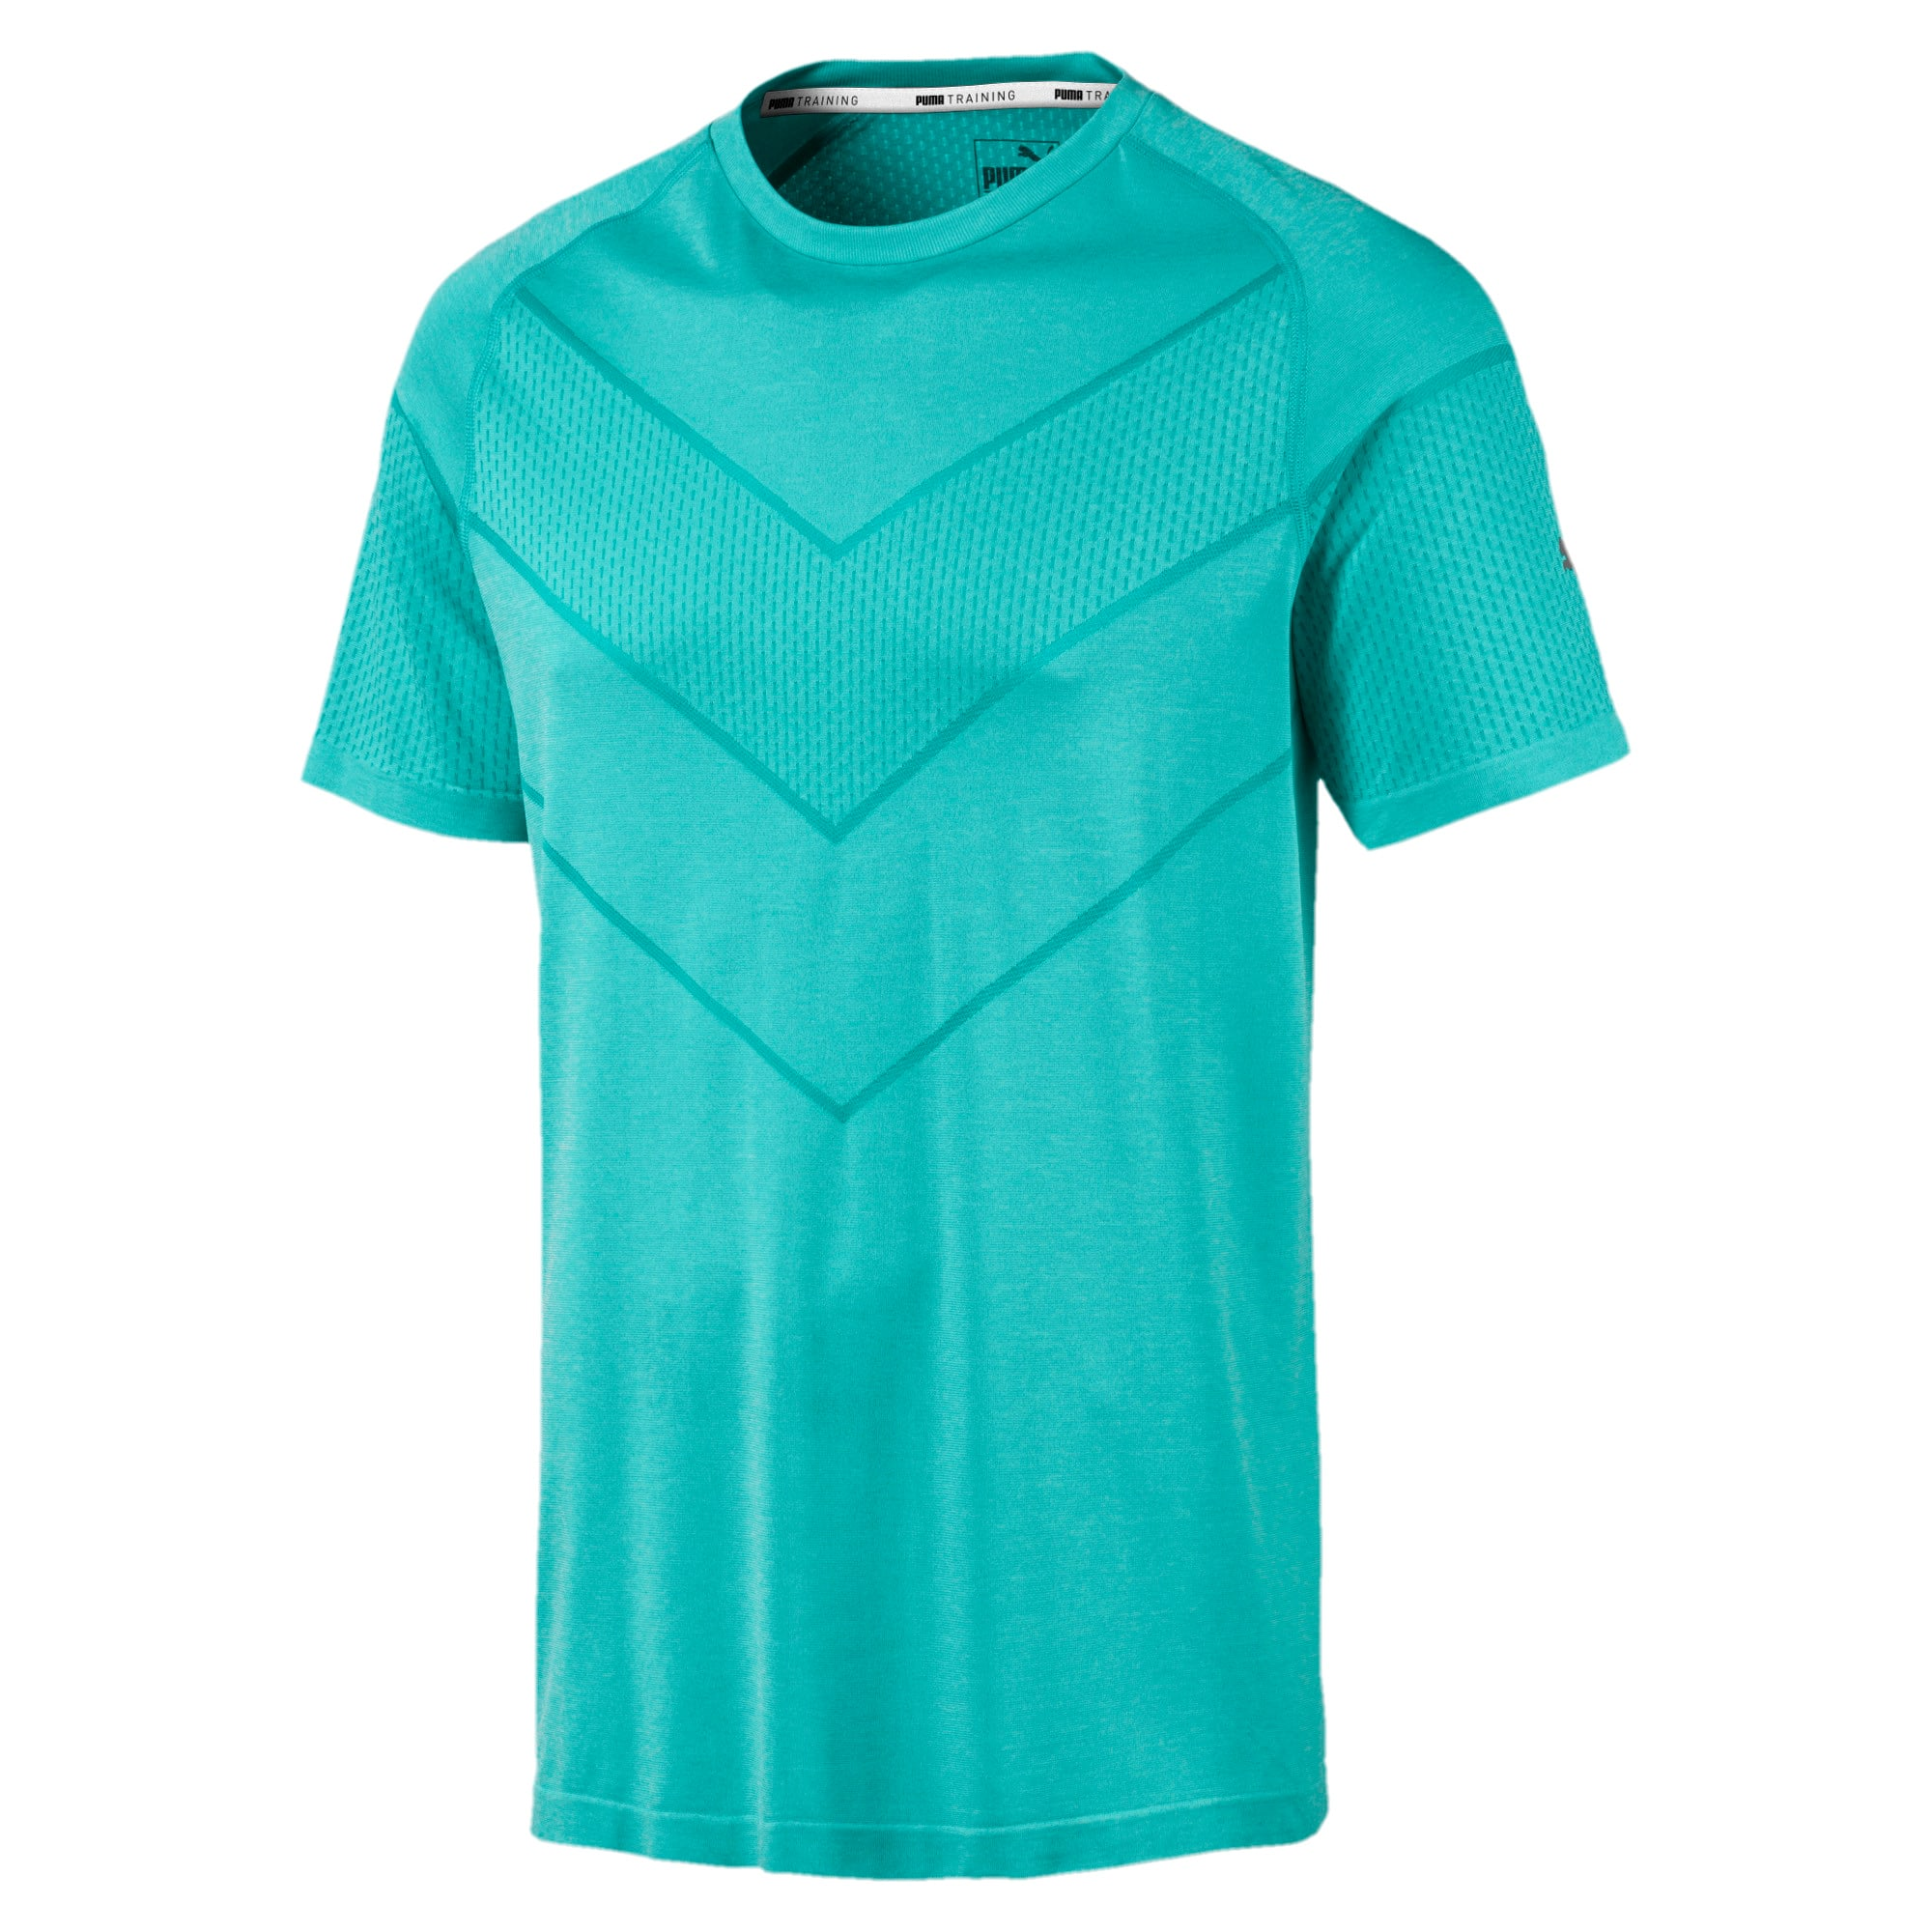 Thumbnail 4 of Reactive evoKNIT Men's Tee, Blue Turquoise Heather, medium